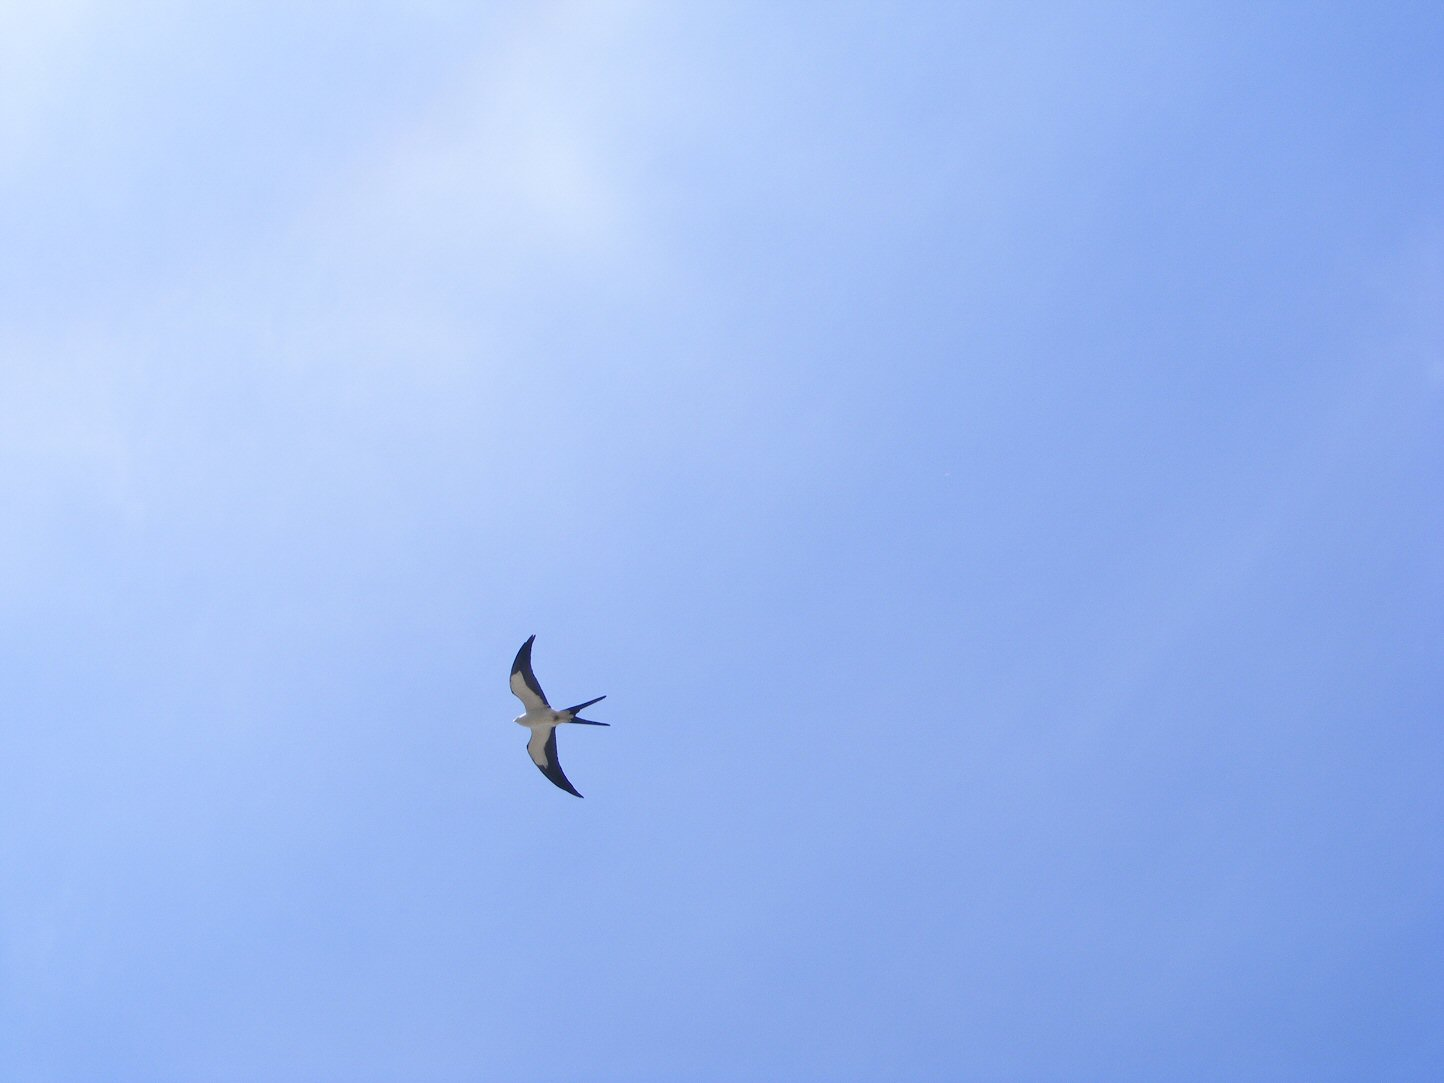 Bird Flying in Blue Skies